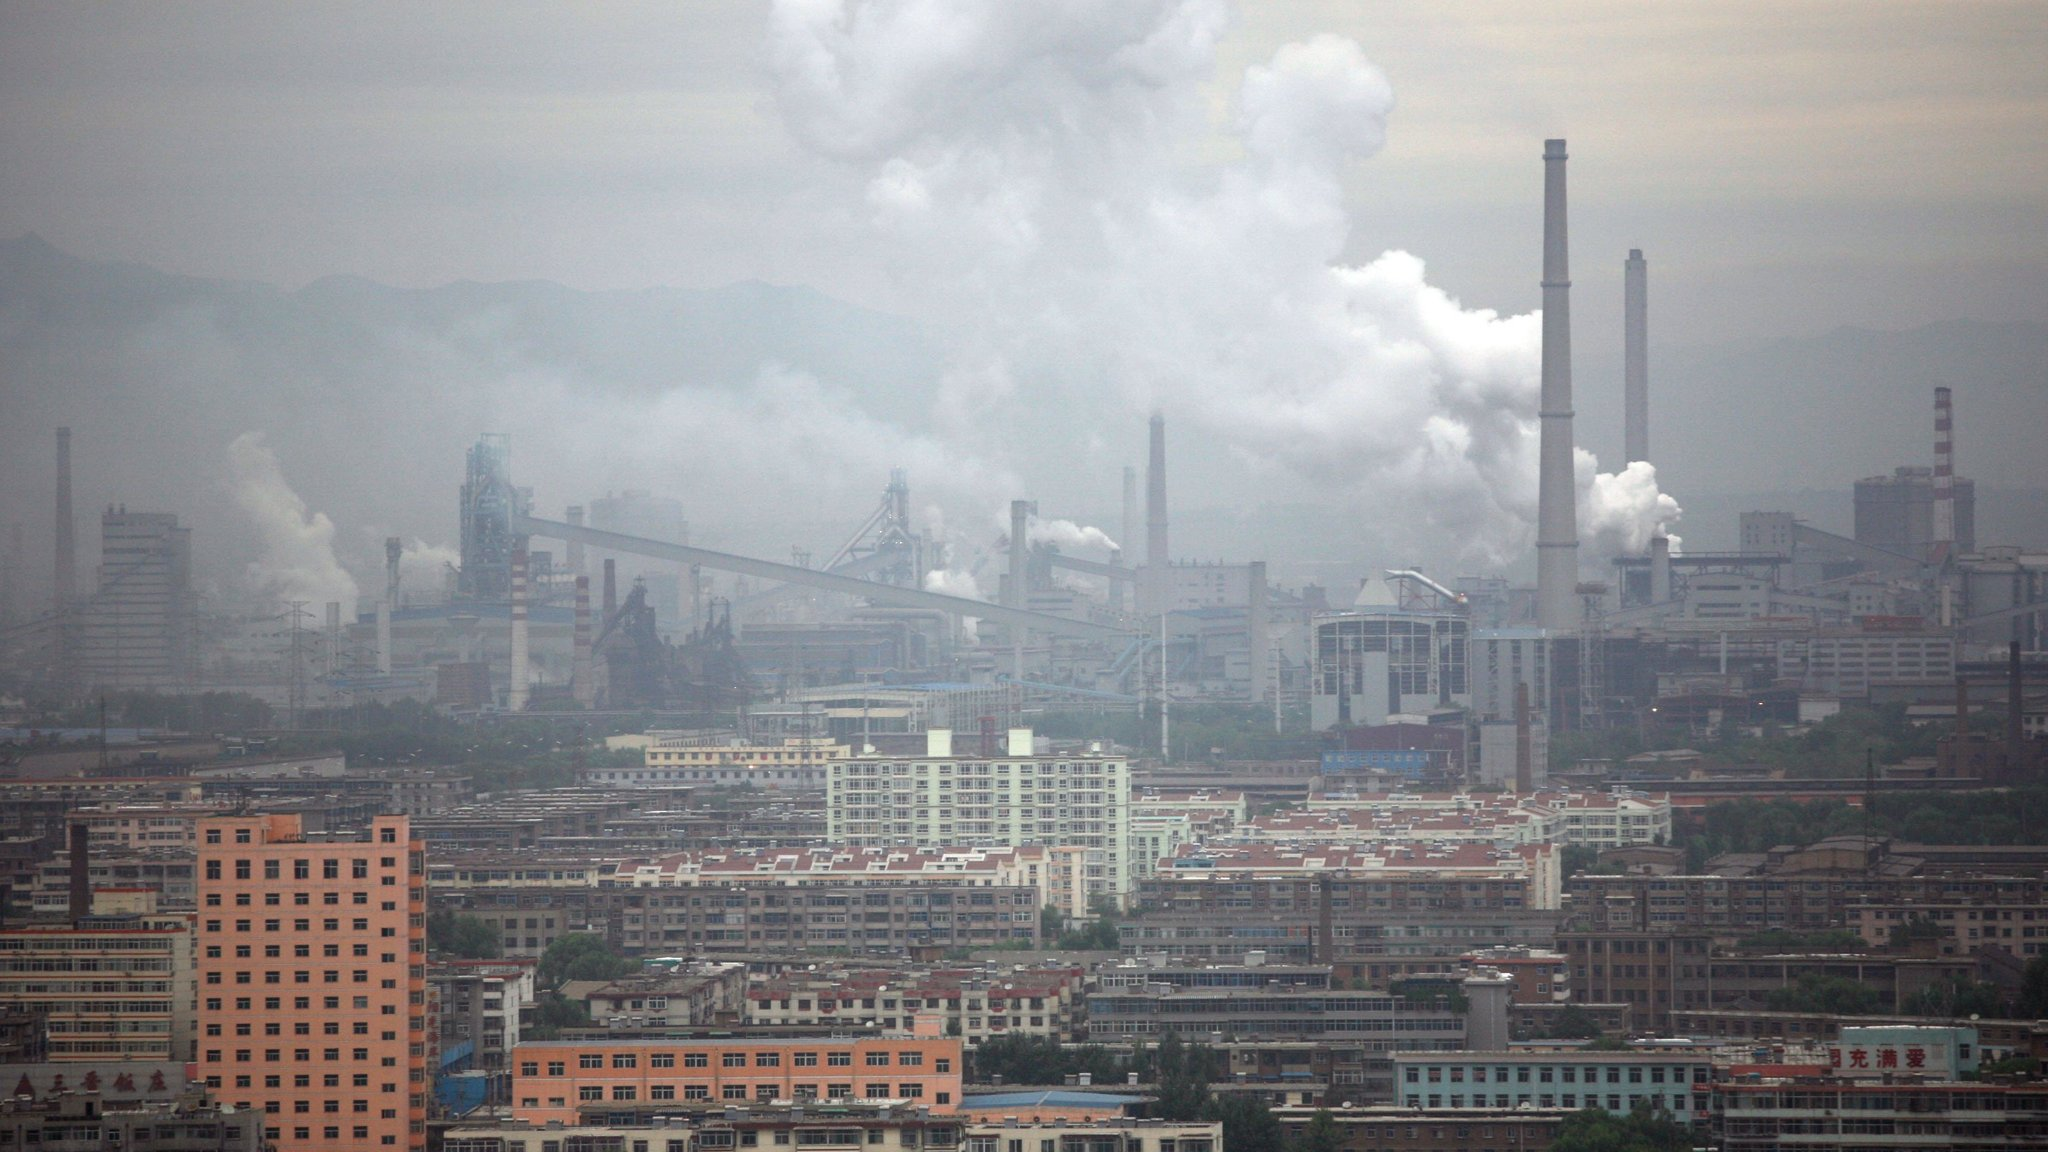 China spends $36bn on coal-fired power despite emissions goals | Financial Times